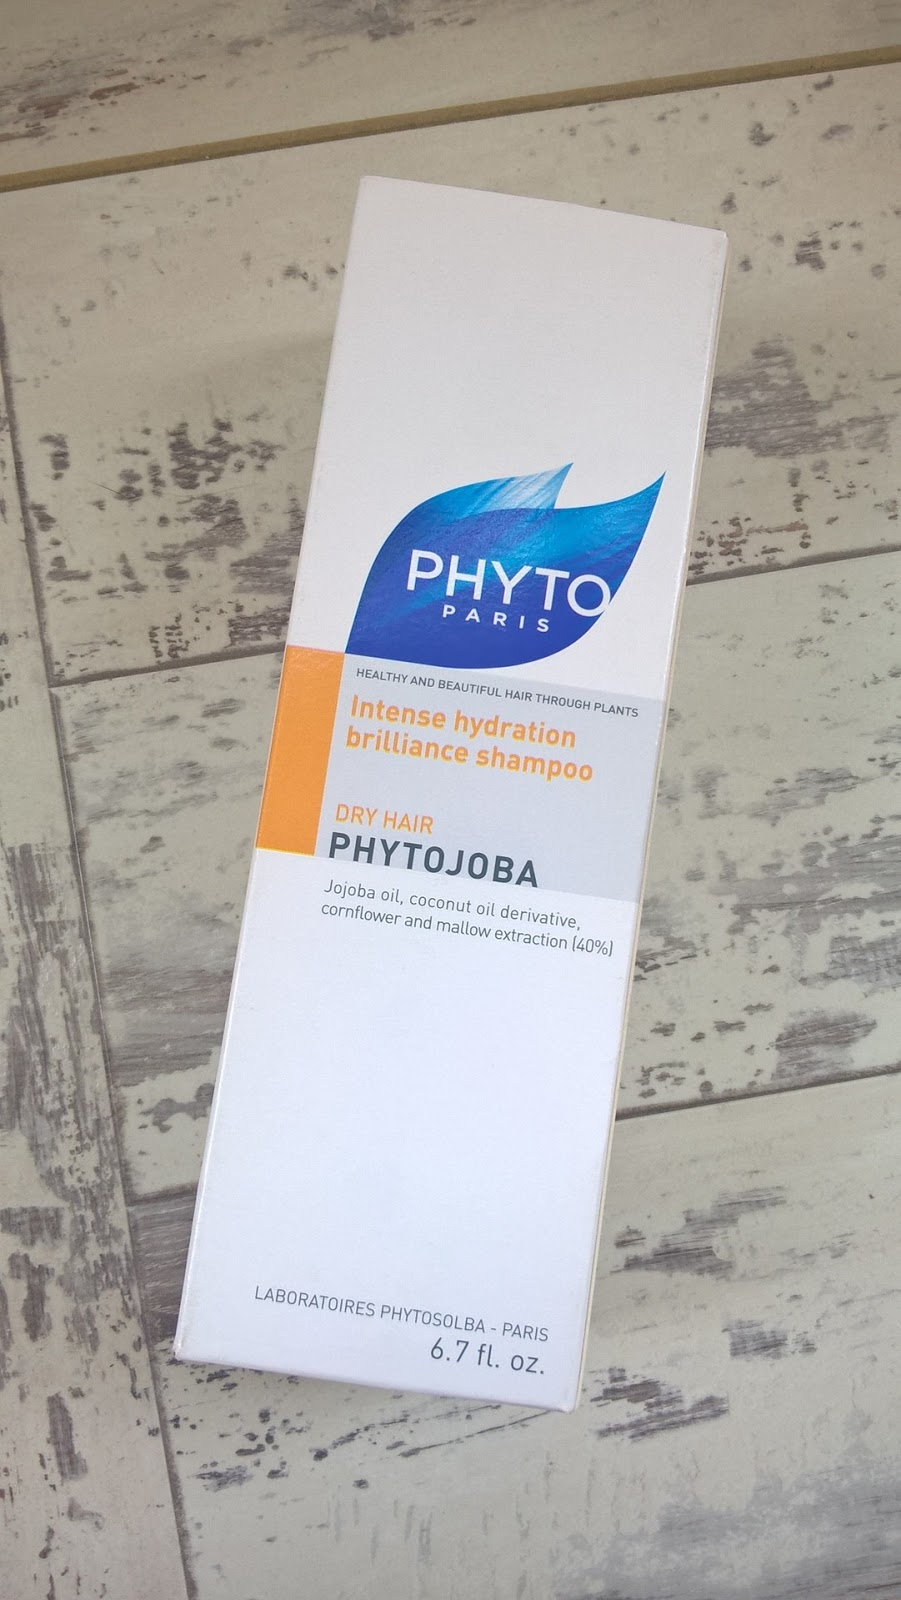 shampoos for thinning and fine hair - Phytojoba from Phyto Paris